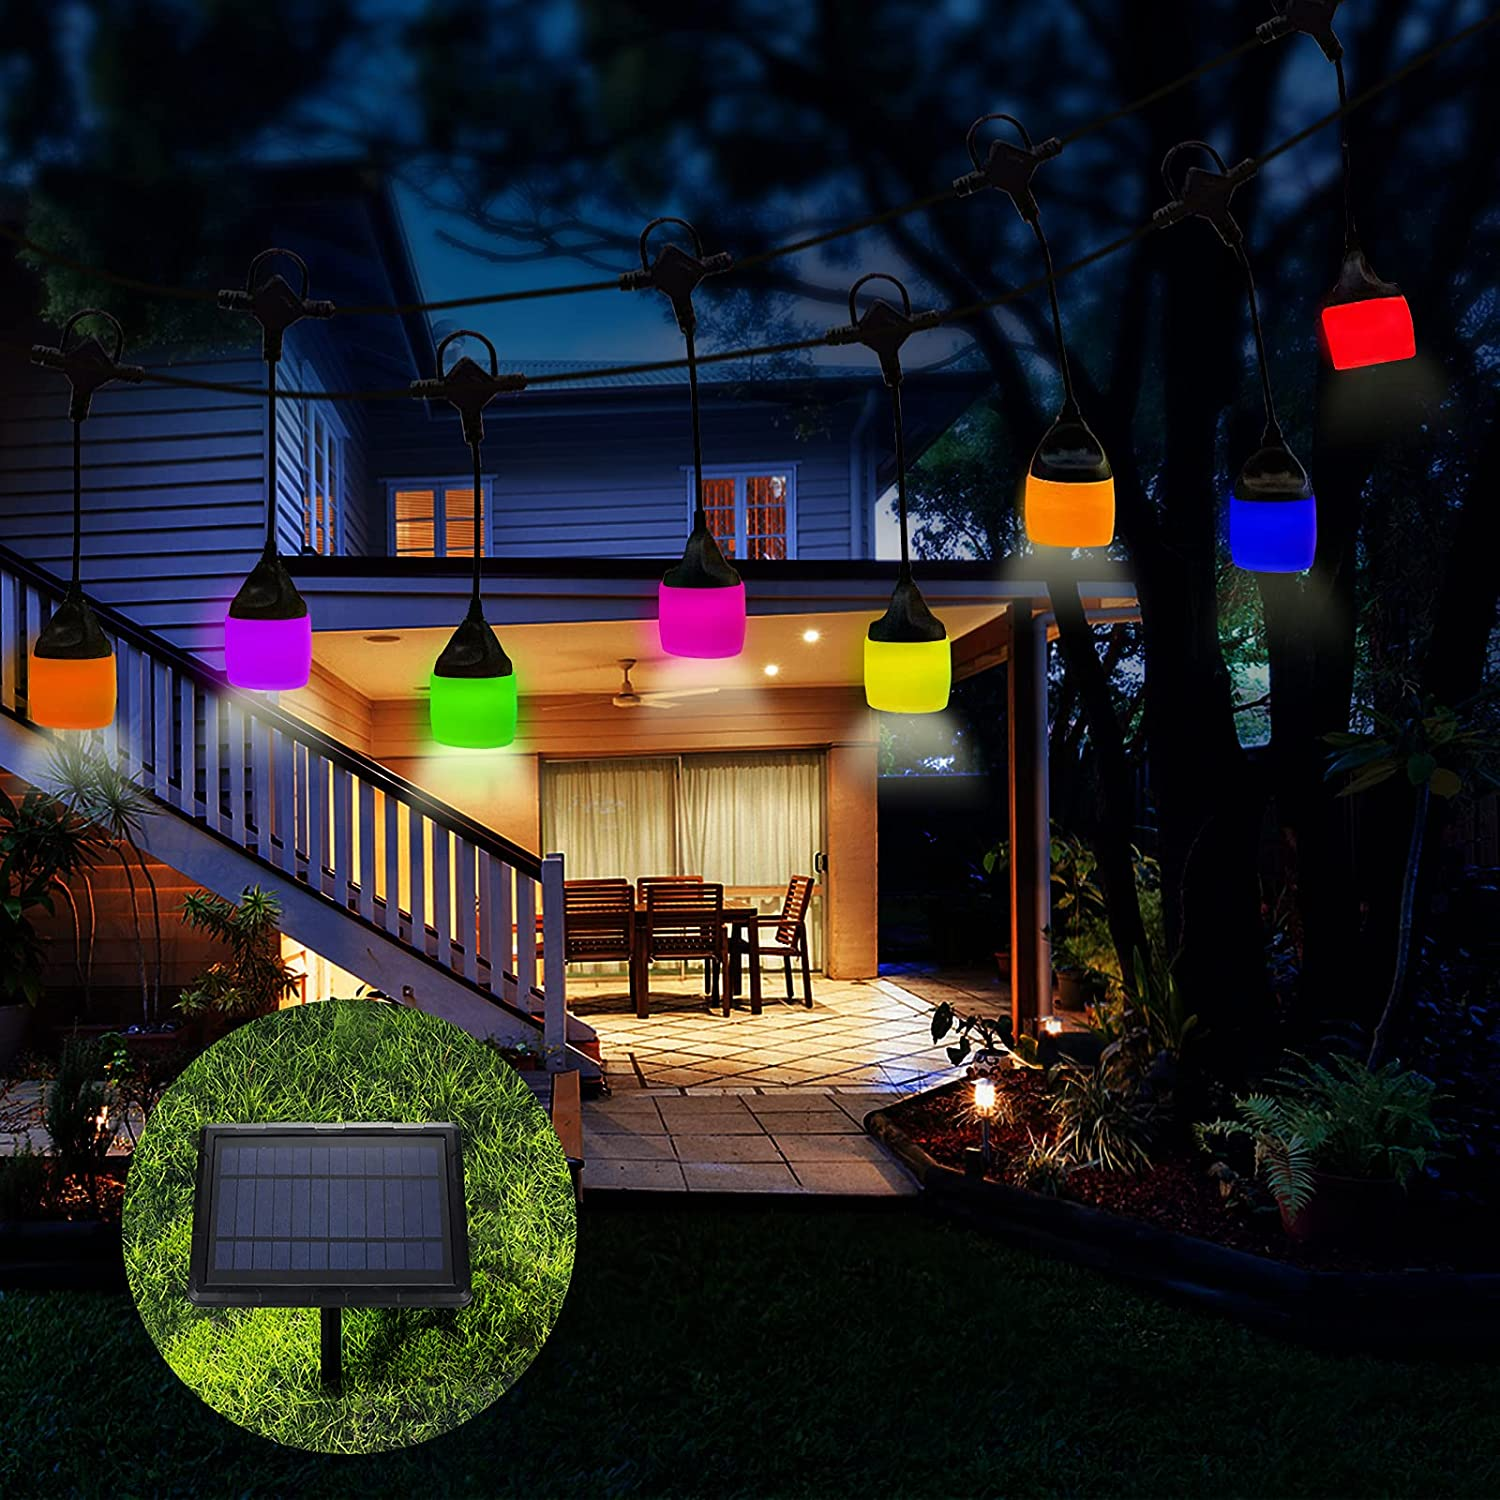 Outdoor String Lights LED Waterproof for Patio, FULLOVE 41 FT Warm White Garden Solar Lights with 8 Modes 12 Bulbs, Hanging Outdoor Lights String for ard Home Party Wedding Christmas Decoration